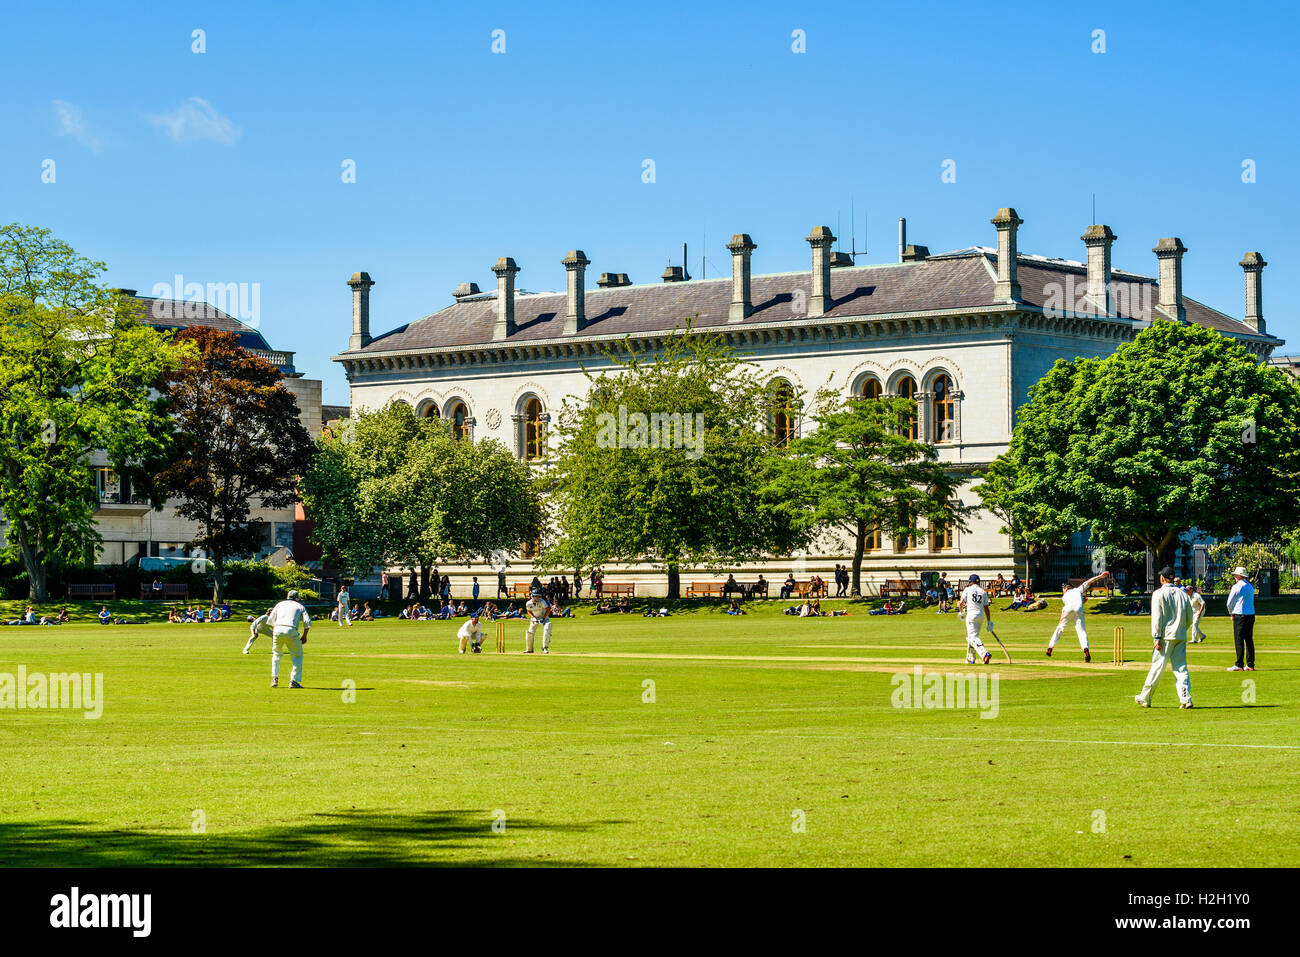 Cricket match on College Park, Trinity College, Dublin, Ireland - Stock Image